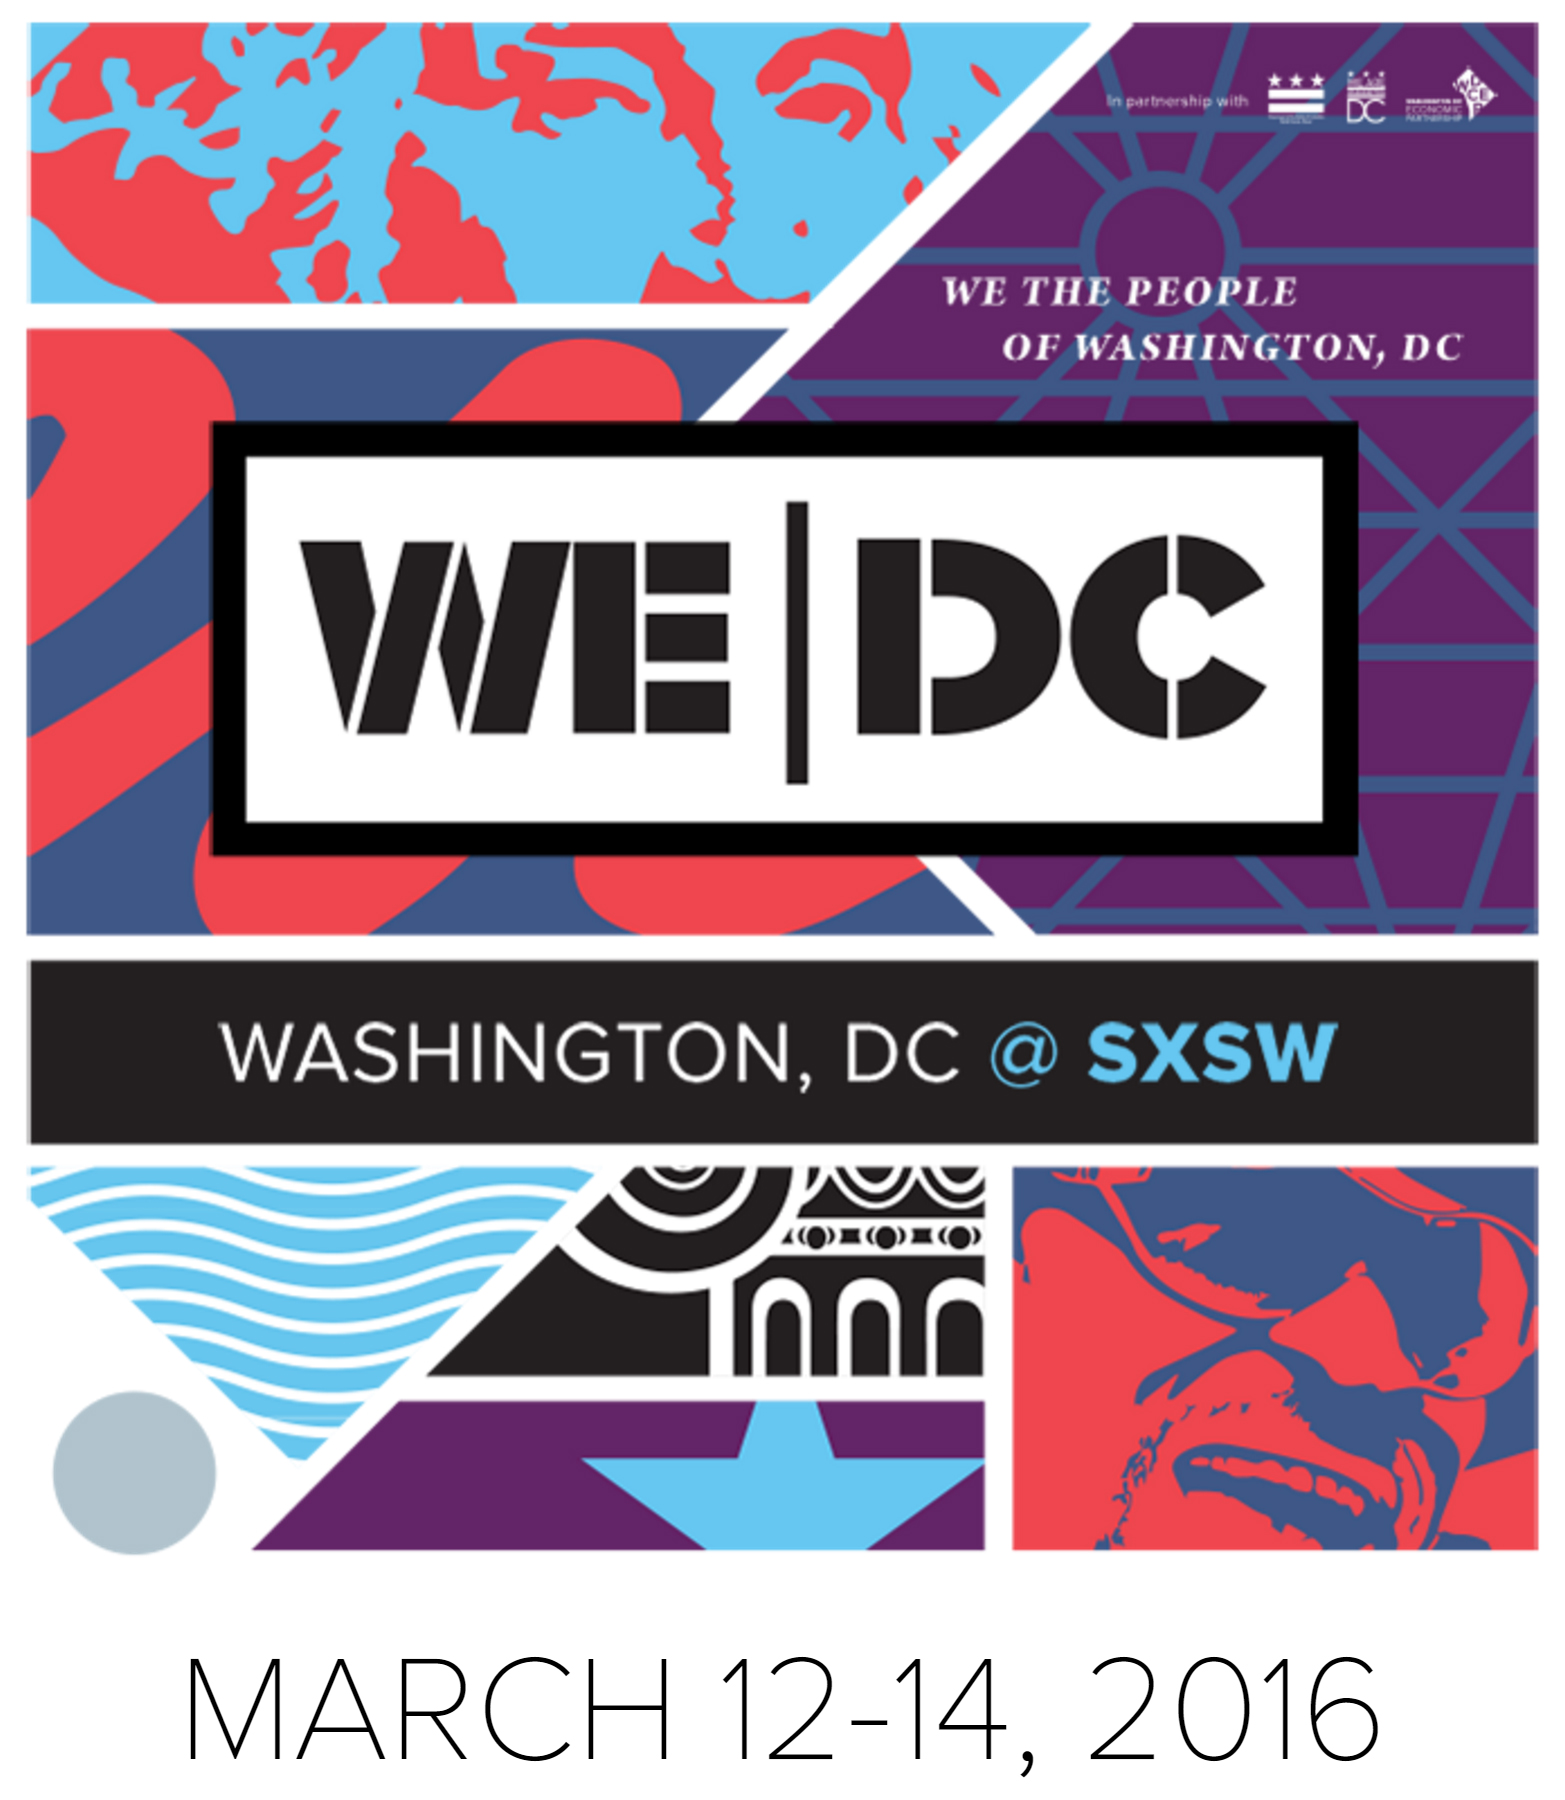 Nominate Freeform Radio to represent D.C. at SXSW #WeDC